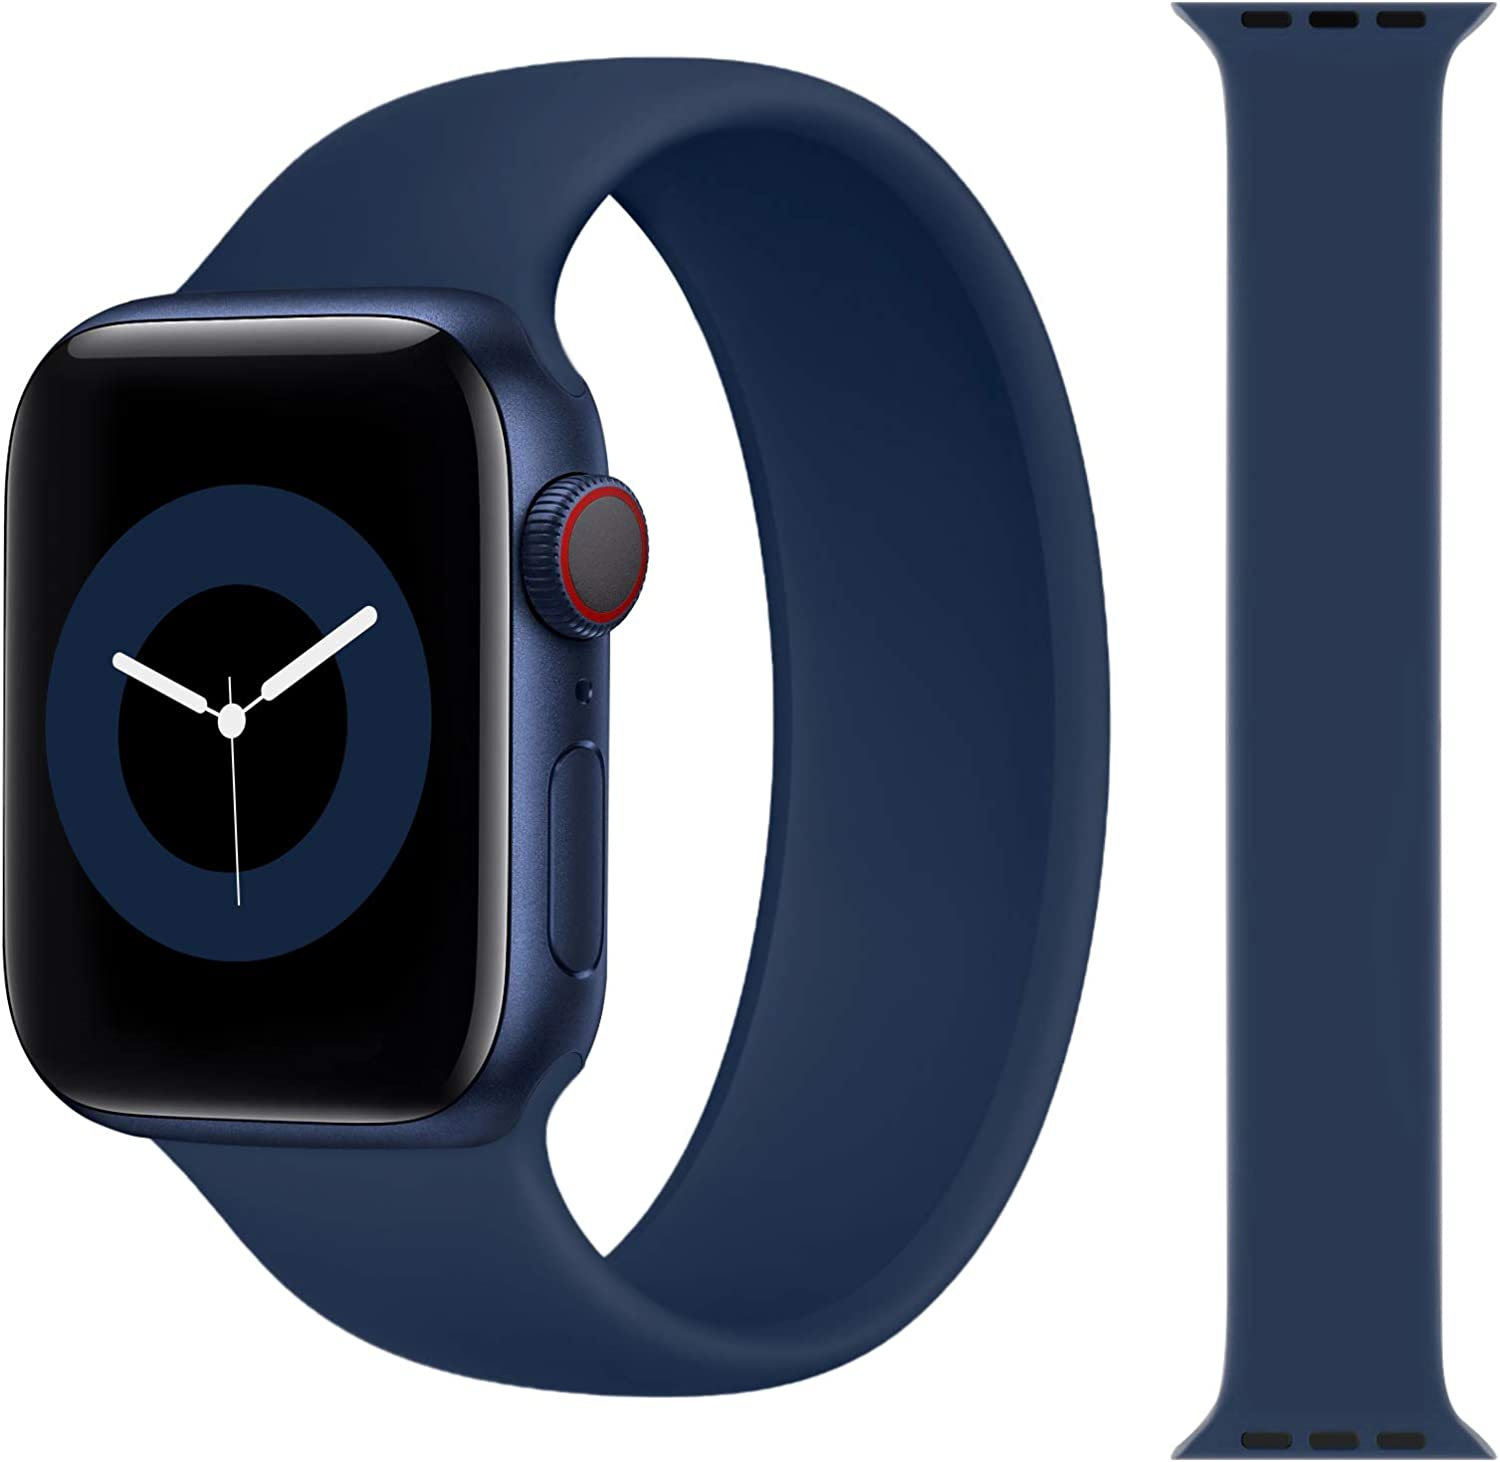 Solo Loop Strap Compatible with Apple Watch Band 38mm 40mm 42mm 44mm, Sport Elastics Silicone Apple Watch Bands Women Men, Replacement Wristband for iWatch Series 6 5 4 3 2 1 SE (Deep Navy 42S)